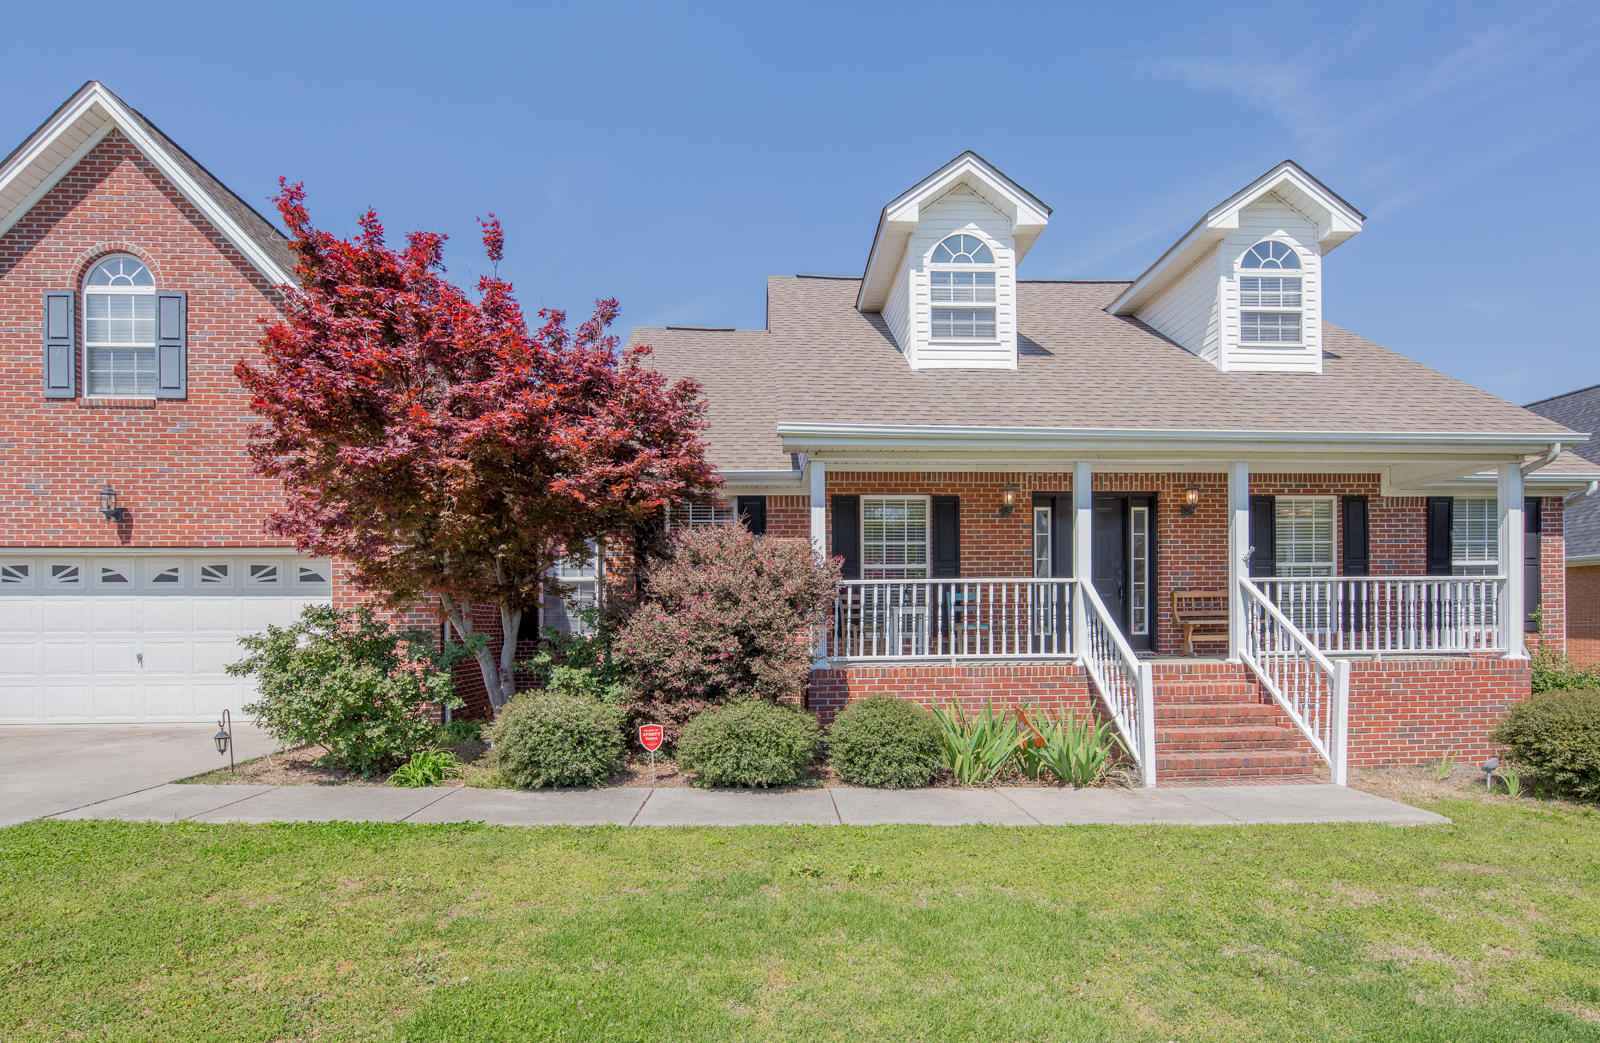 7237 Meredith Ct, Ooltewah, TN 37363